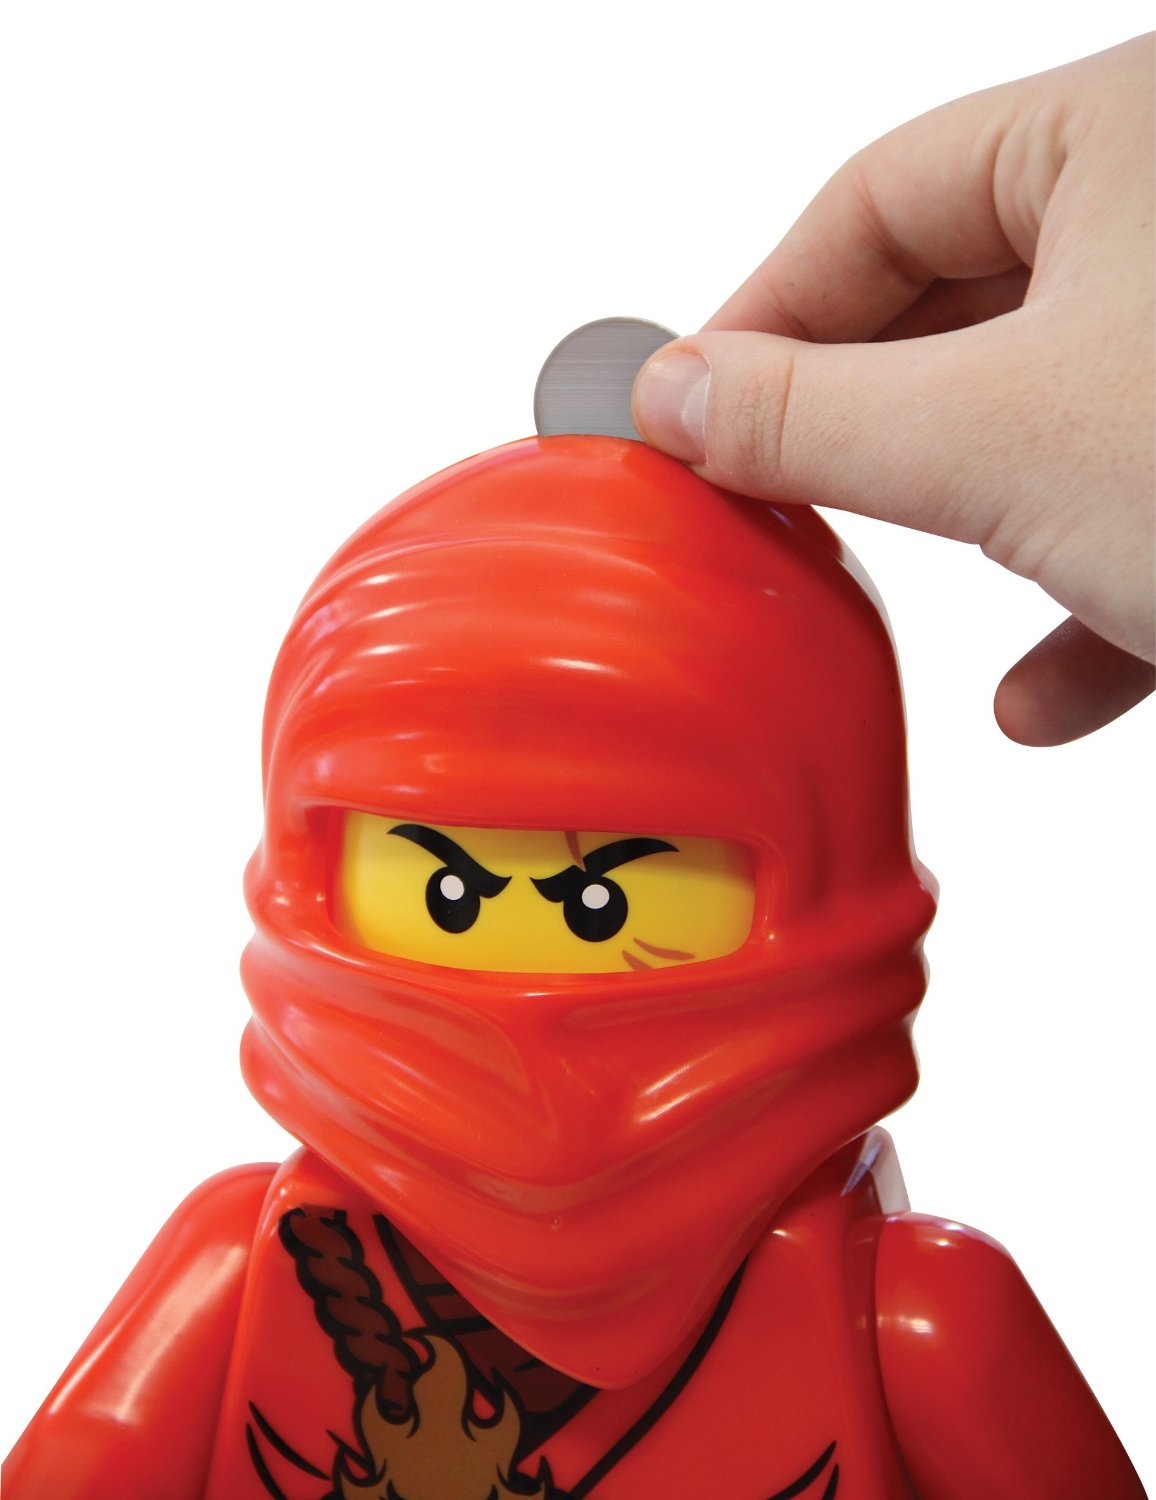 NINJAGO PIGGY BANK